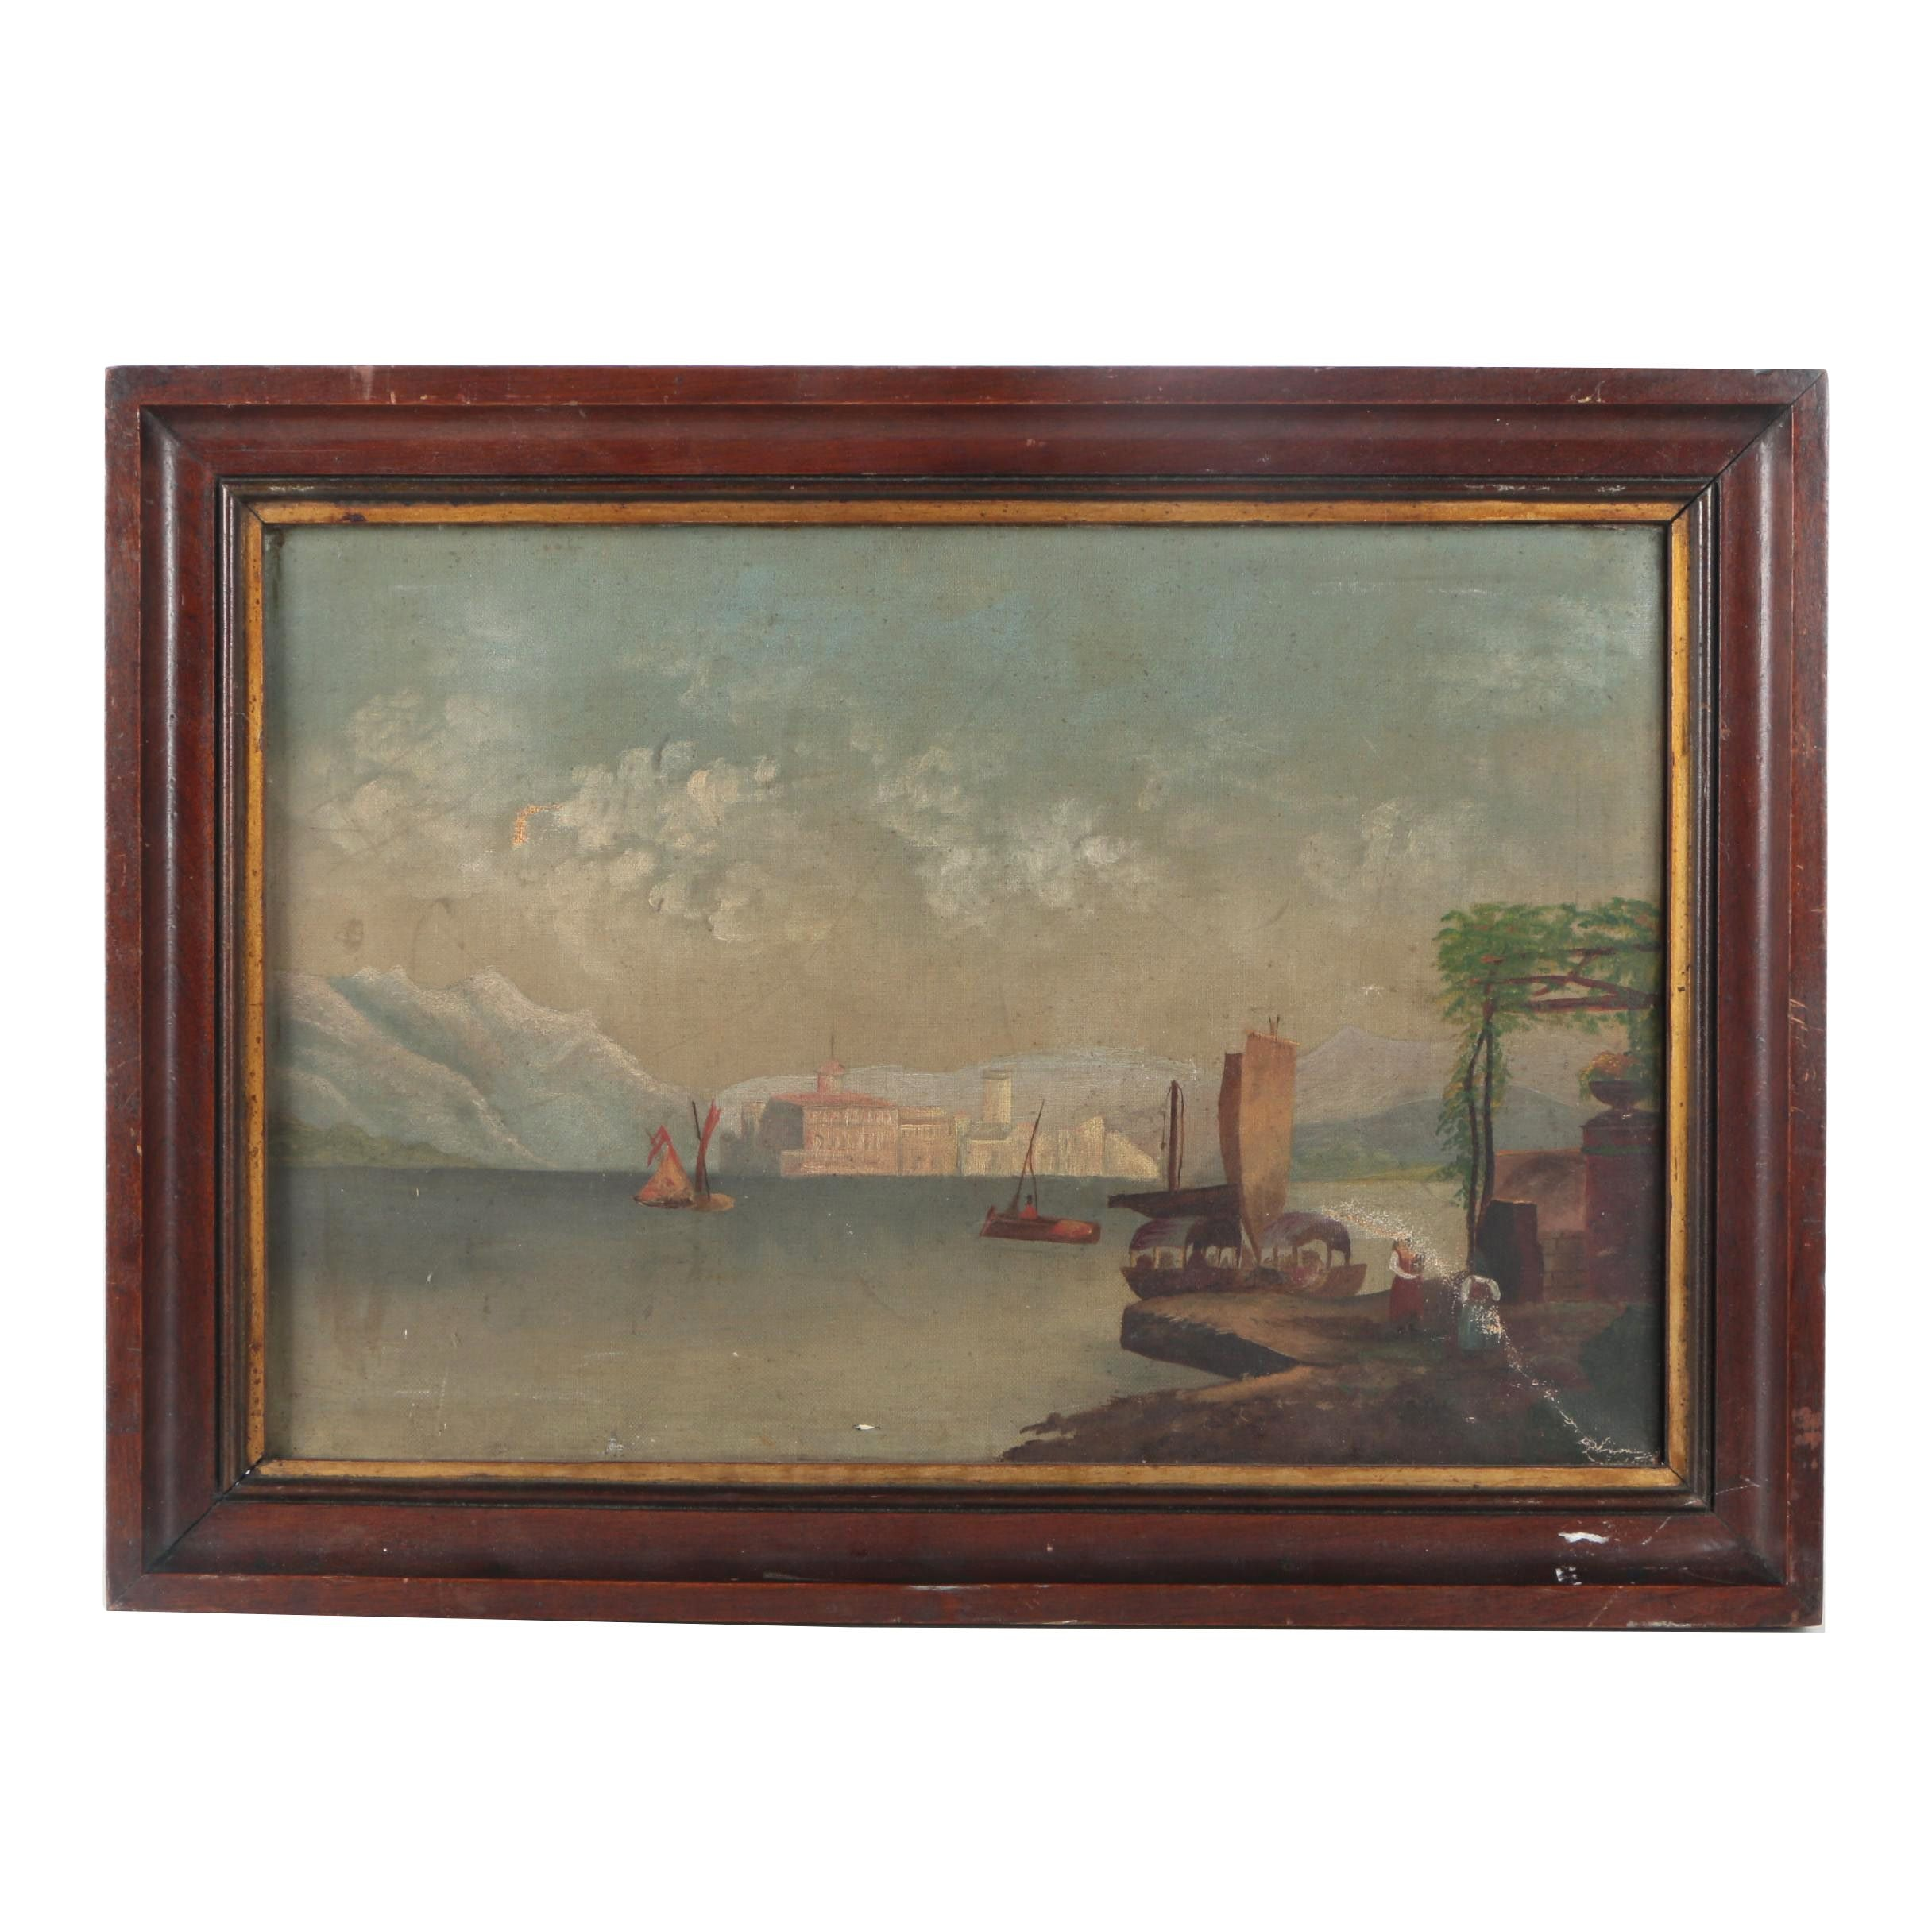 Oil Painting of a Lakeside City